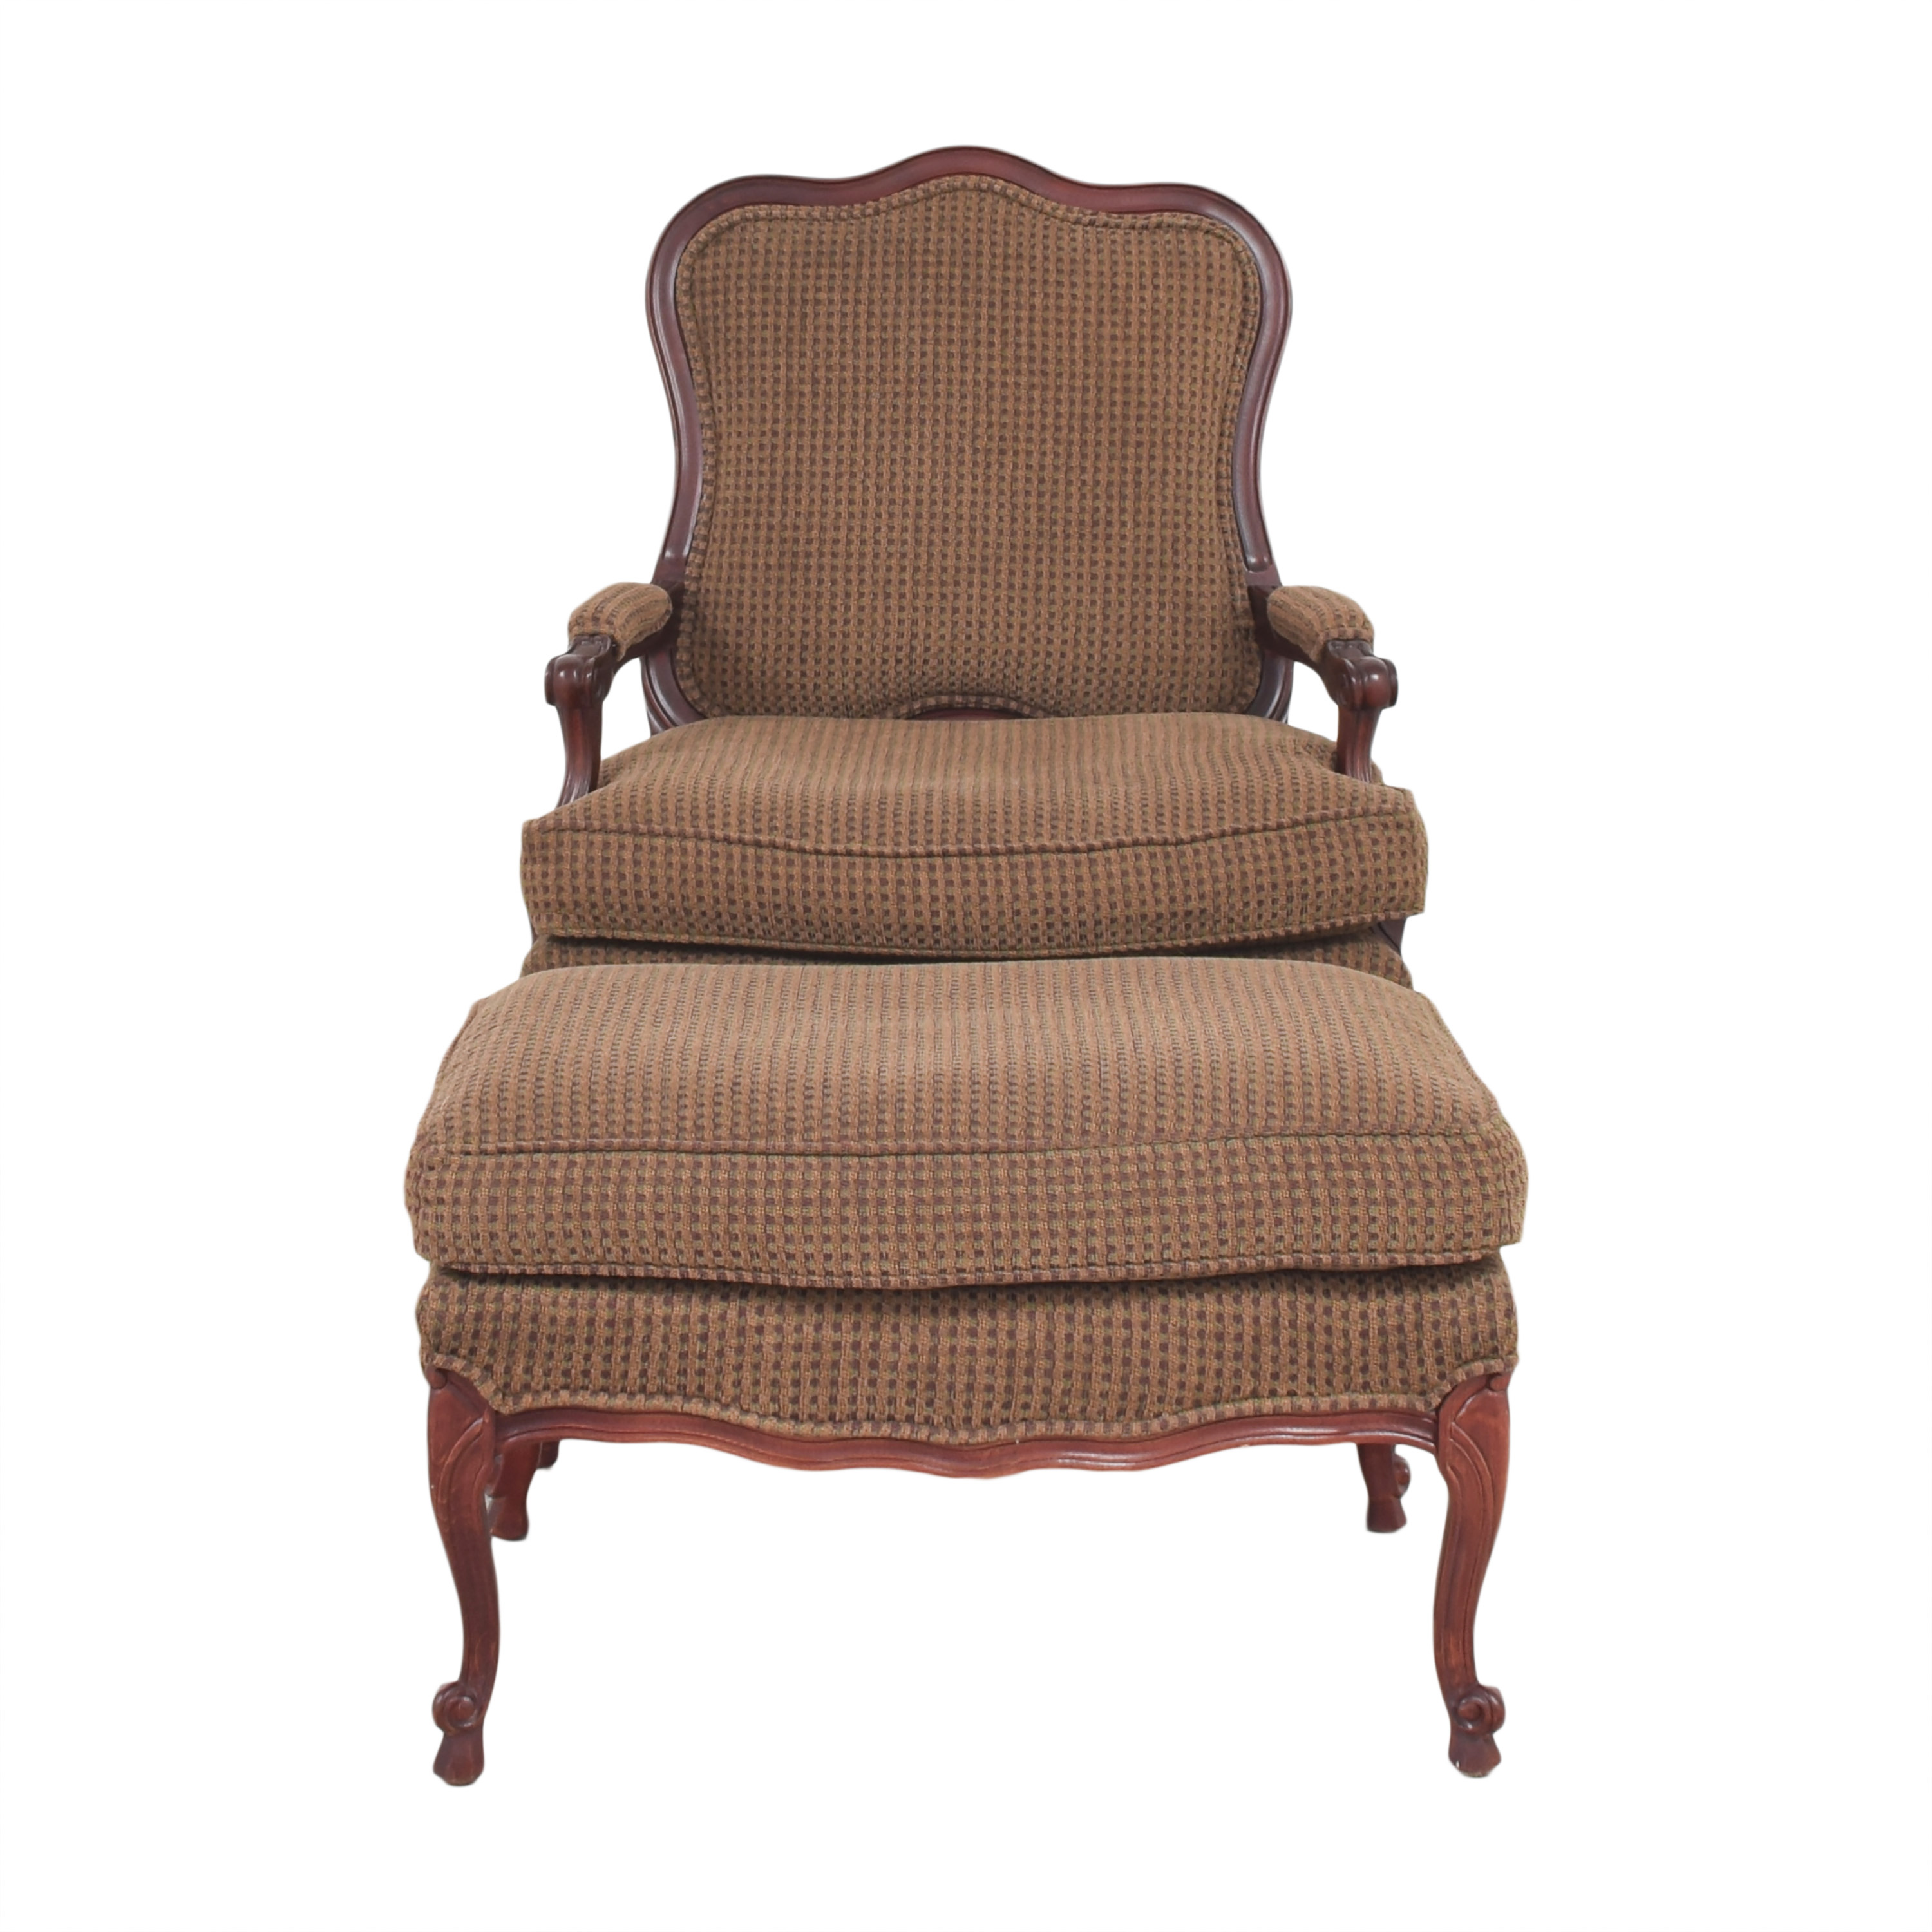 Fairfield Chair Company Accent Chair with Ottoman / Accent Chairs